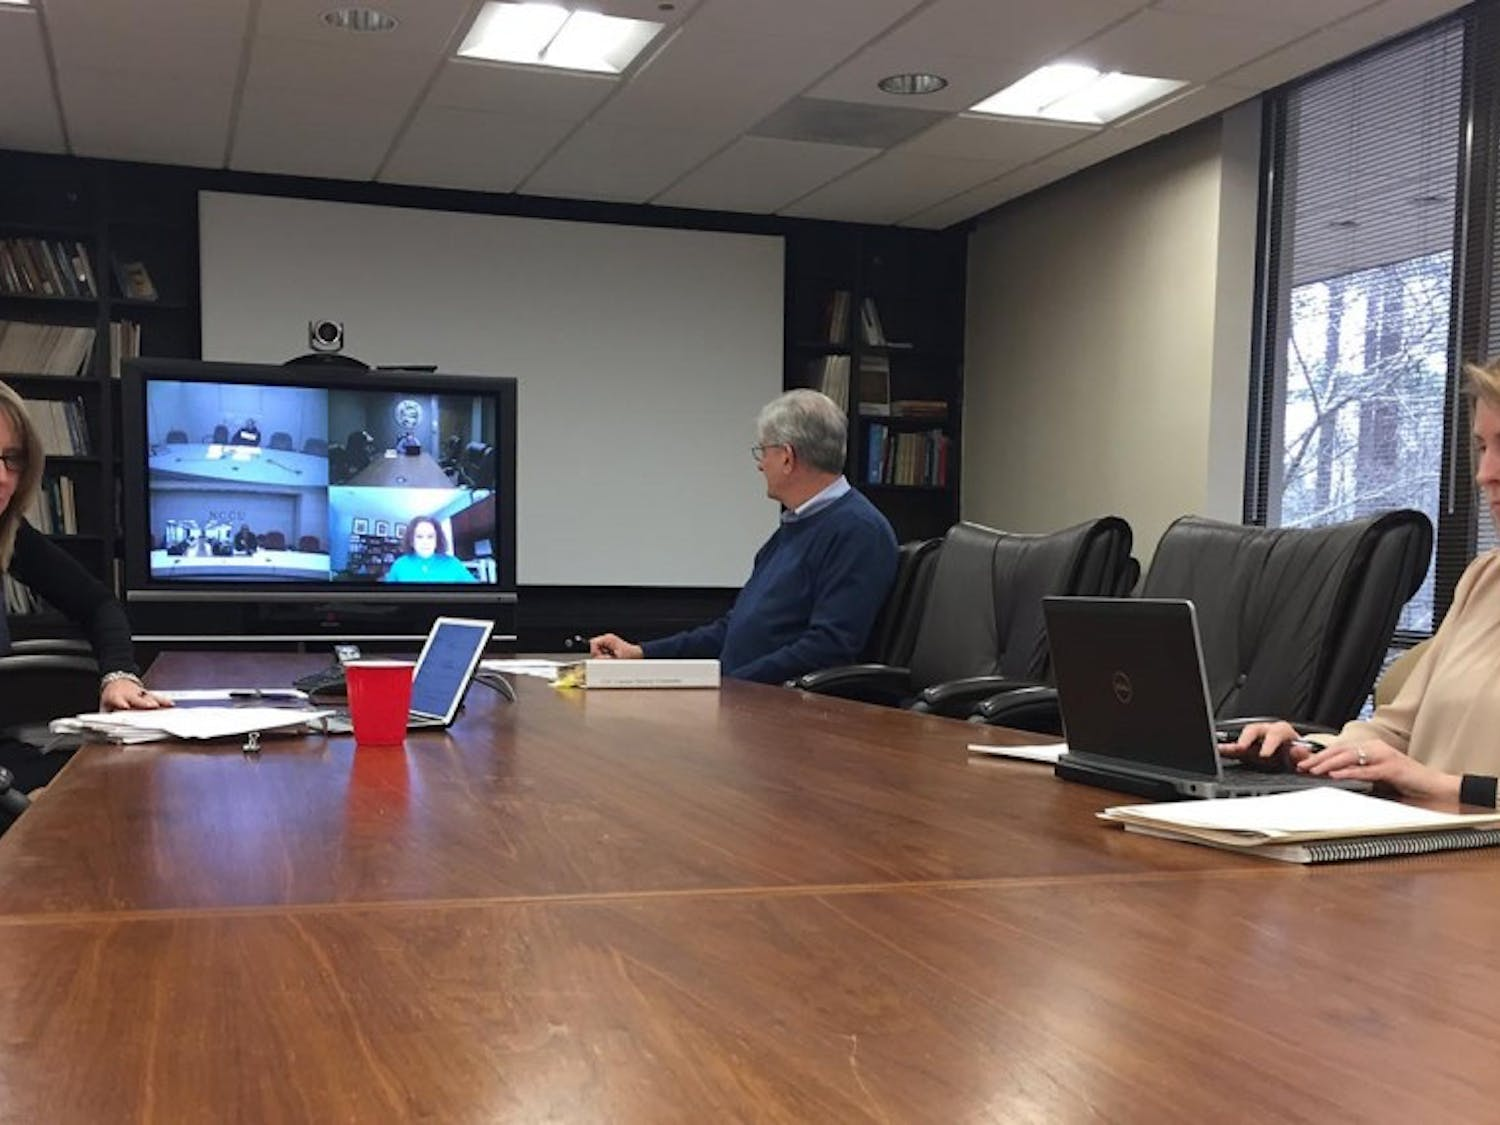 Jayne Grandes, Robert Joyce and Carrie Johnston (L-R) along with other subcommittee members discuss UNC system's policy on sexual harassment and sexual violence via teleconference. The subcommittee is part of the Board of Governor's Campus Security Committee.